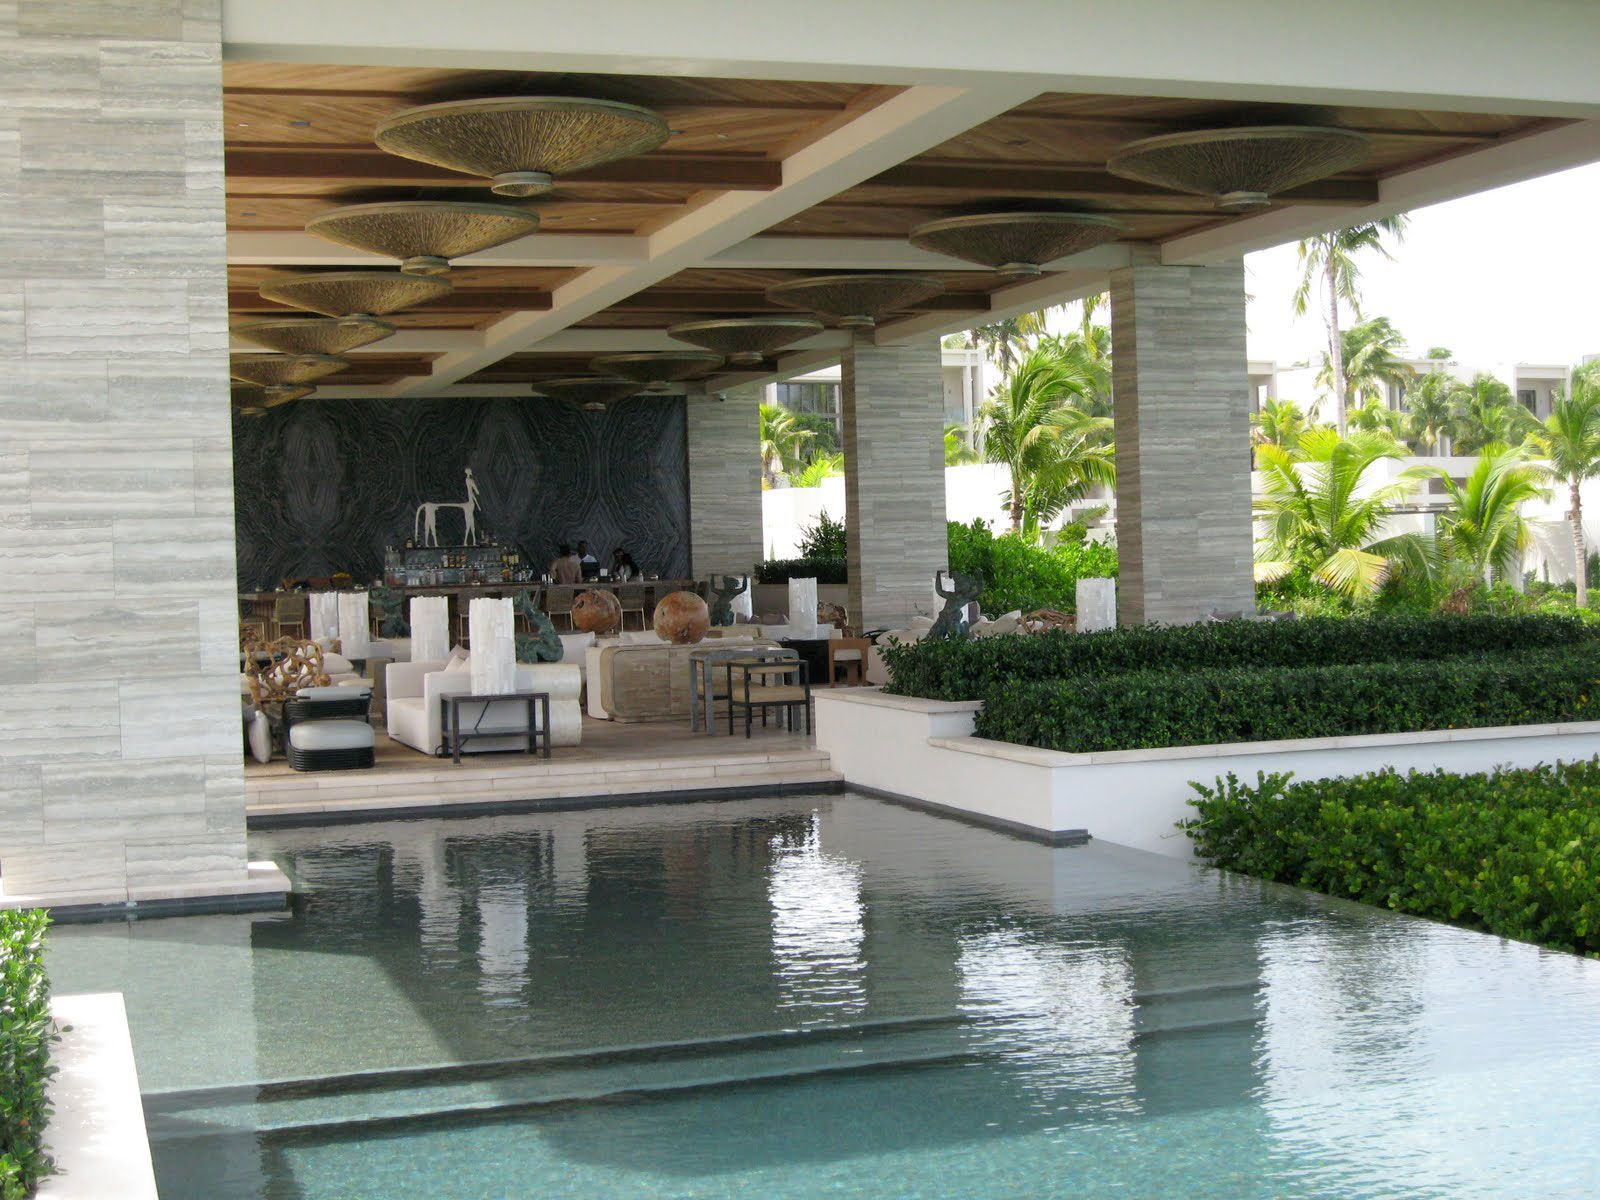 find this pin and more on ideas architecture indoor outdoor pool design - Outdoor Design Ideas